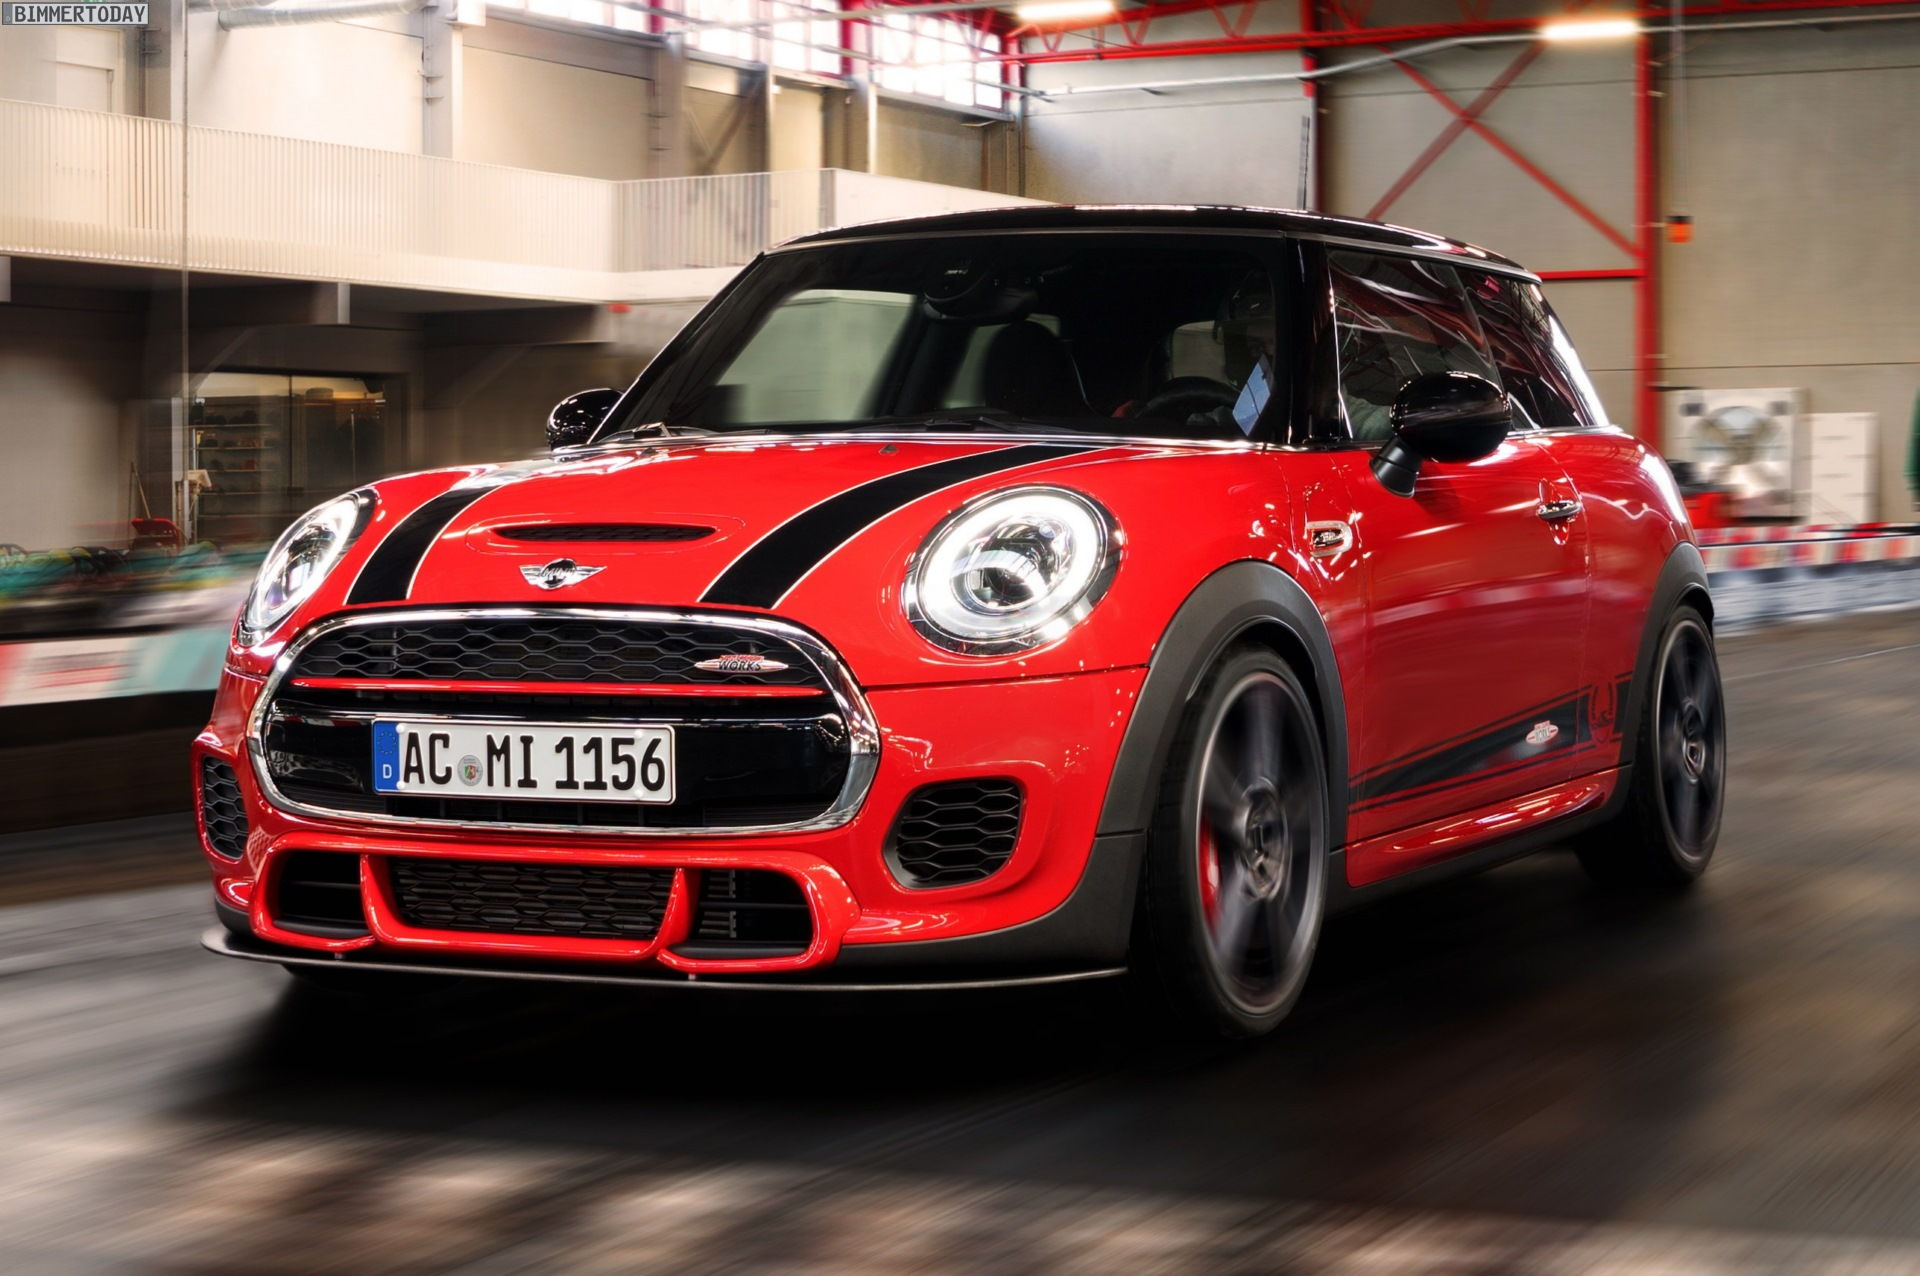 Ac schnitzer 19 wheels for jcw north american motoring there you go vanachro Gallery